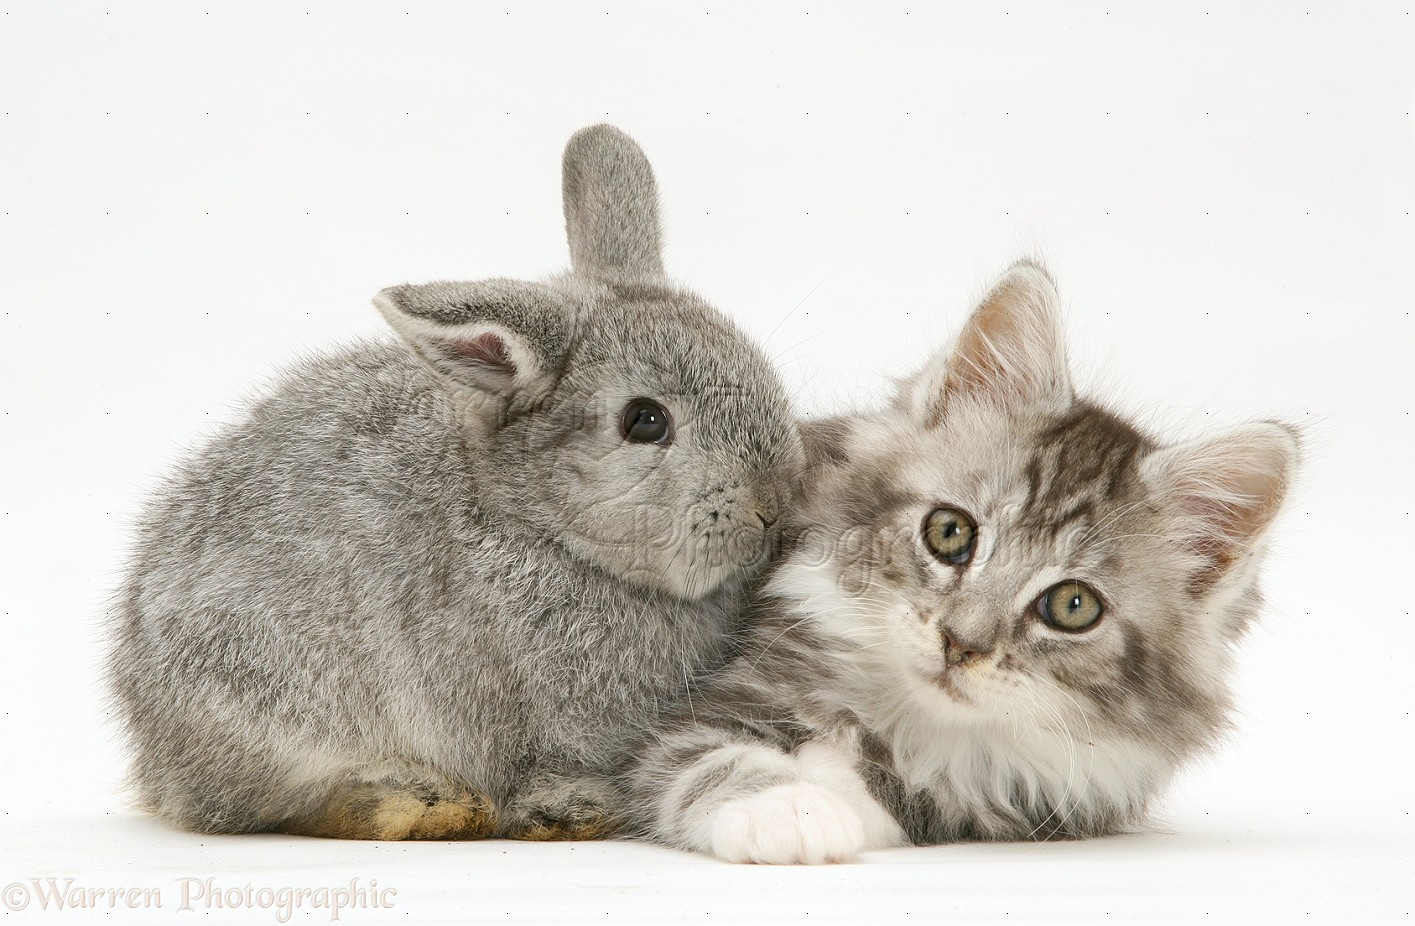 WP26844 Baby silver Lop rabbit with silver tabby Maine Coon kitten.